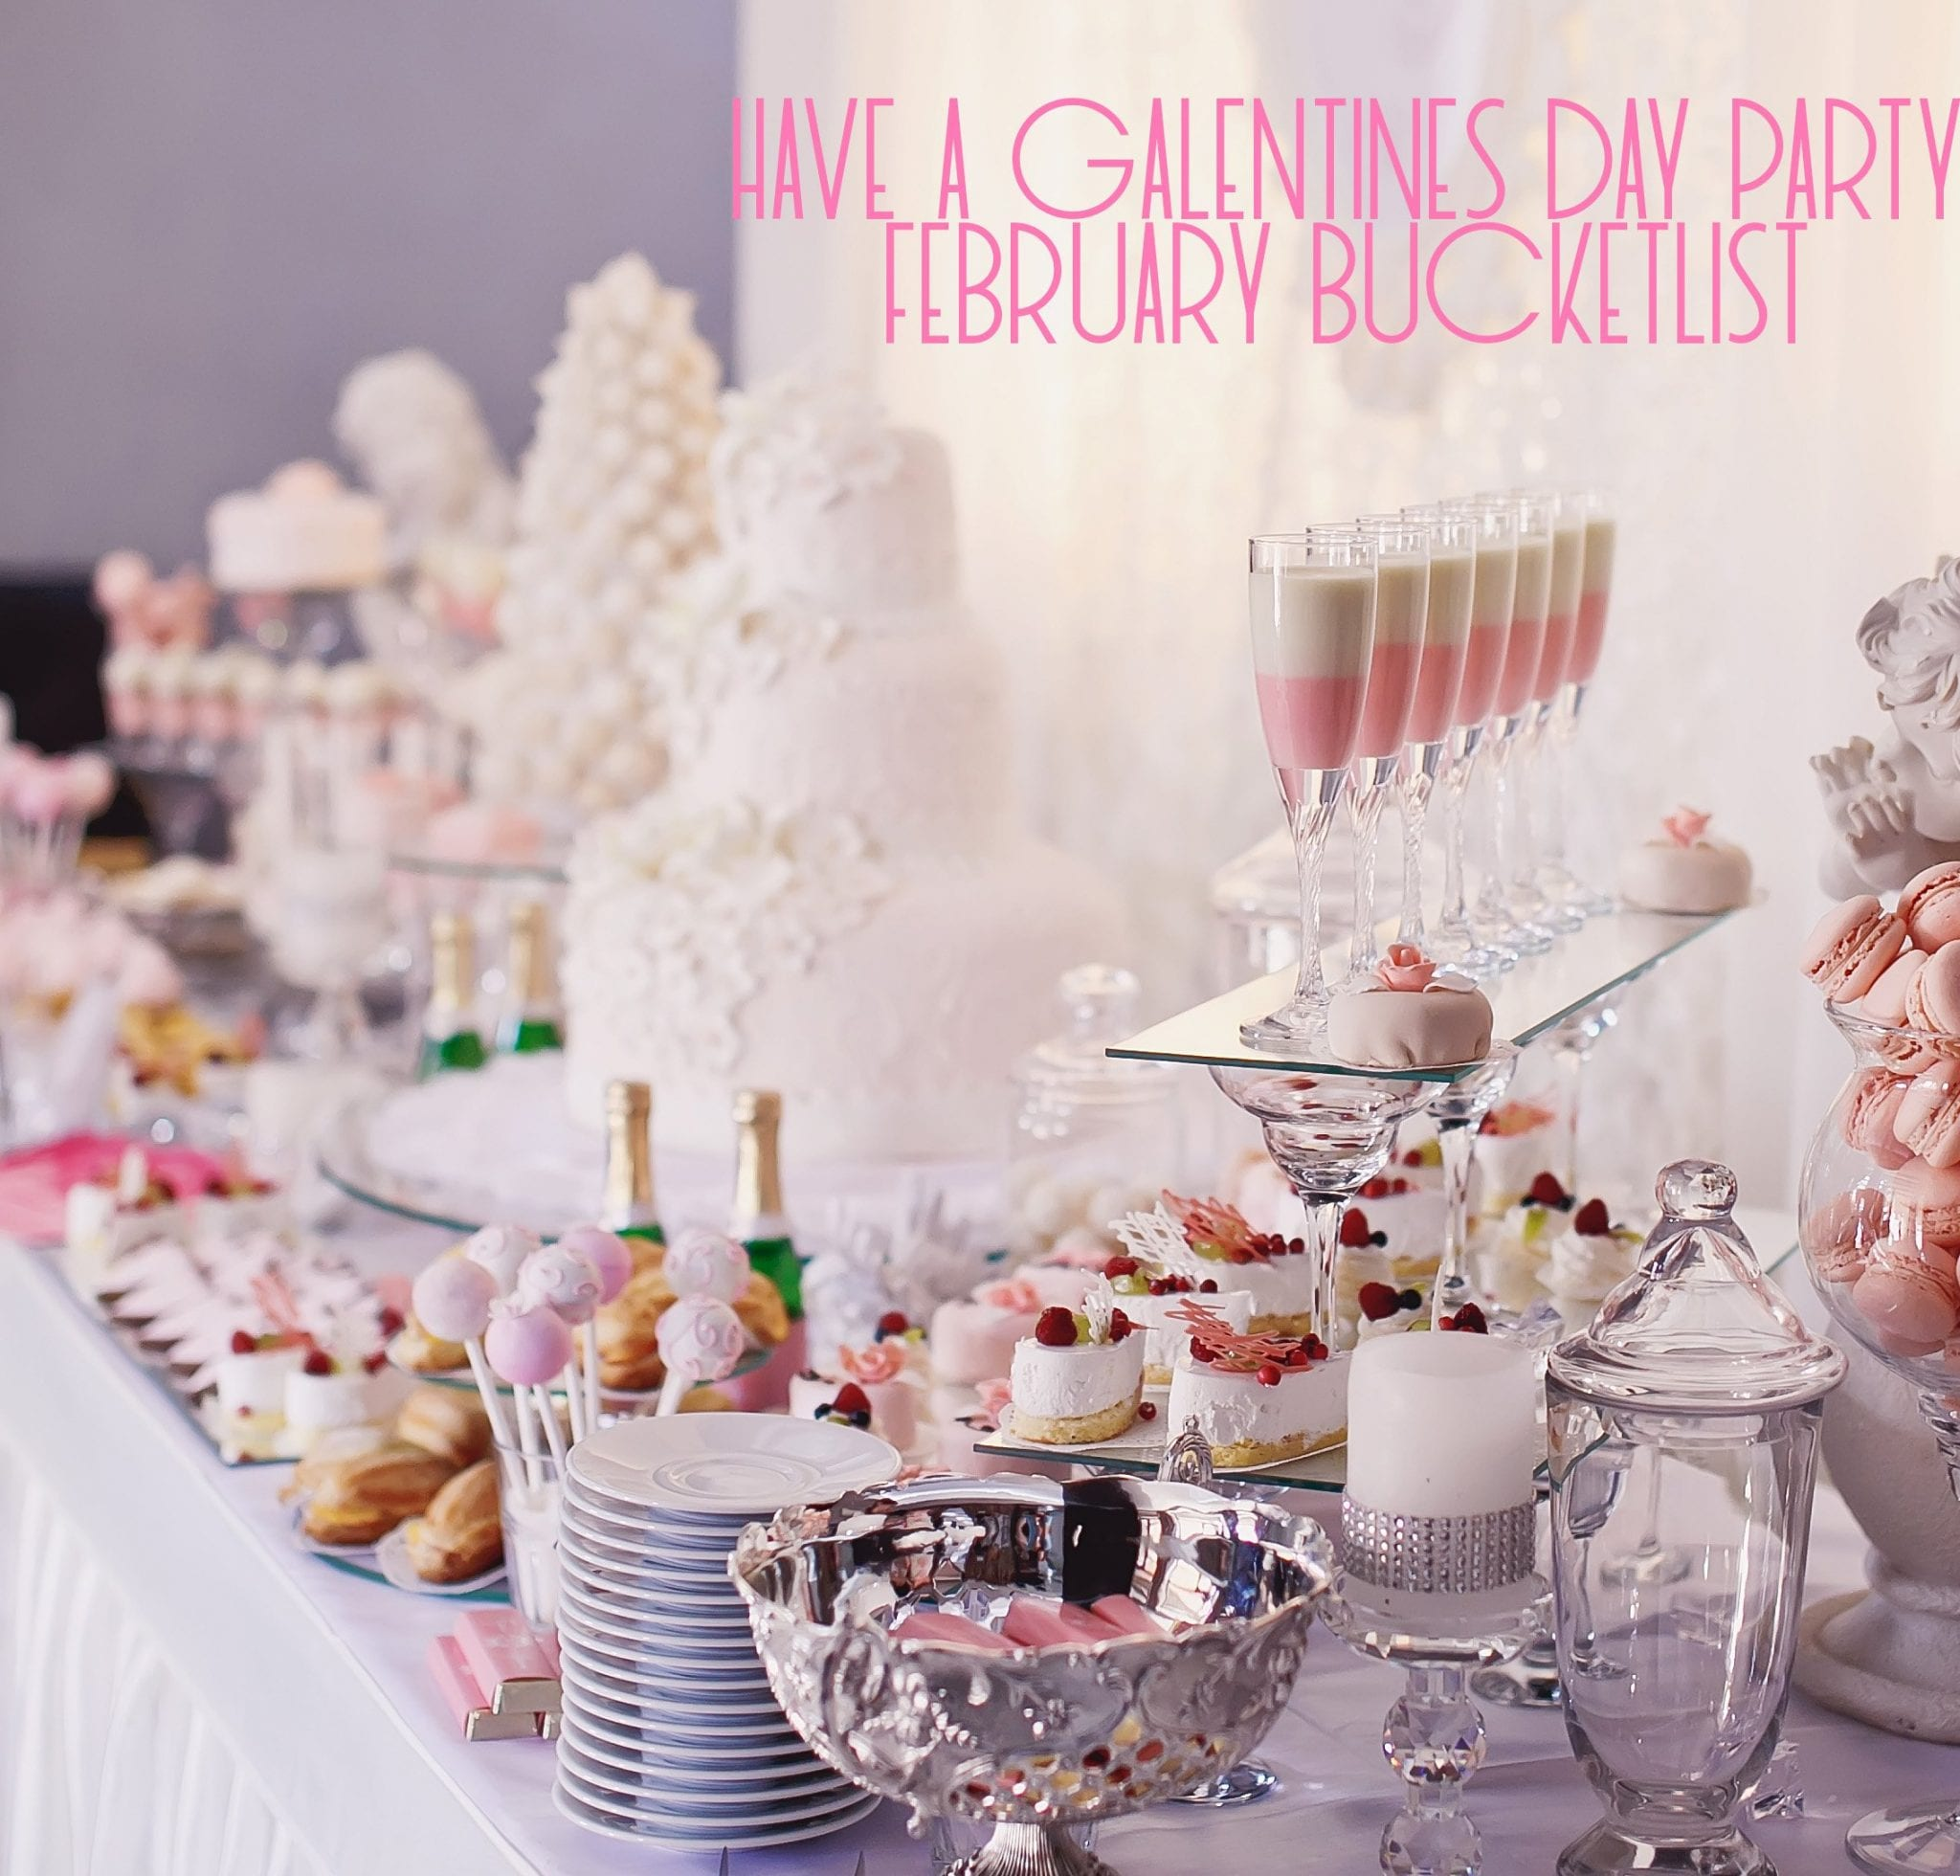 Galantines Day Party | February Bucket List | Good Life of a Housewife